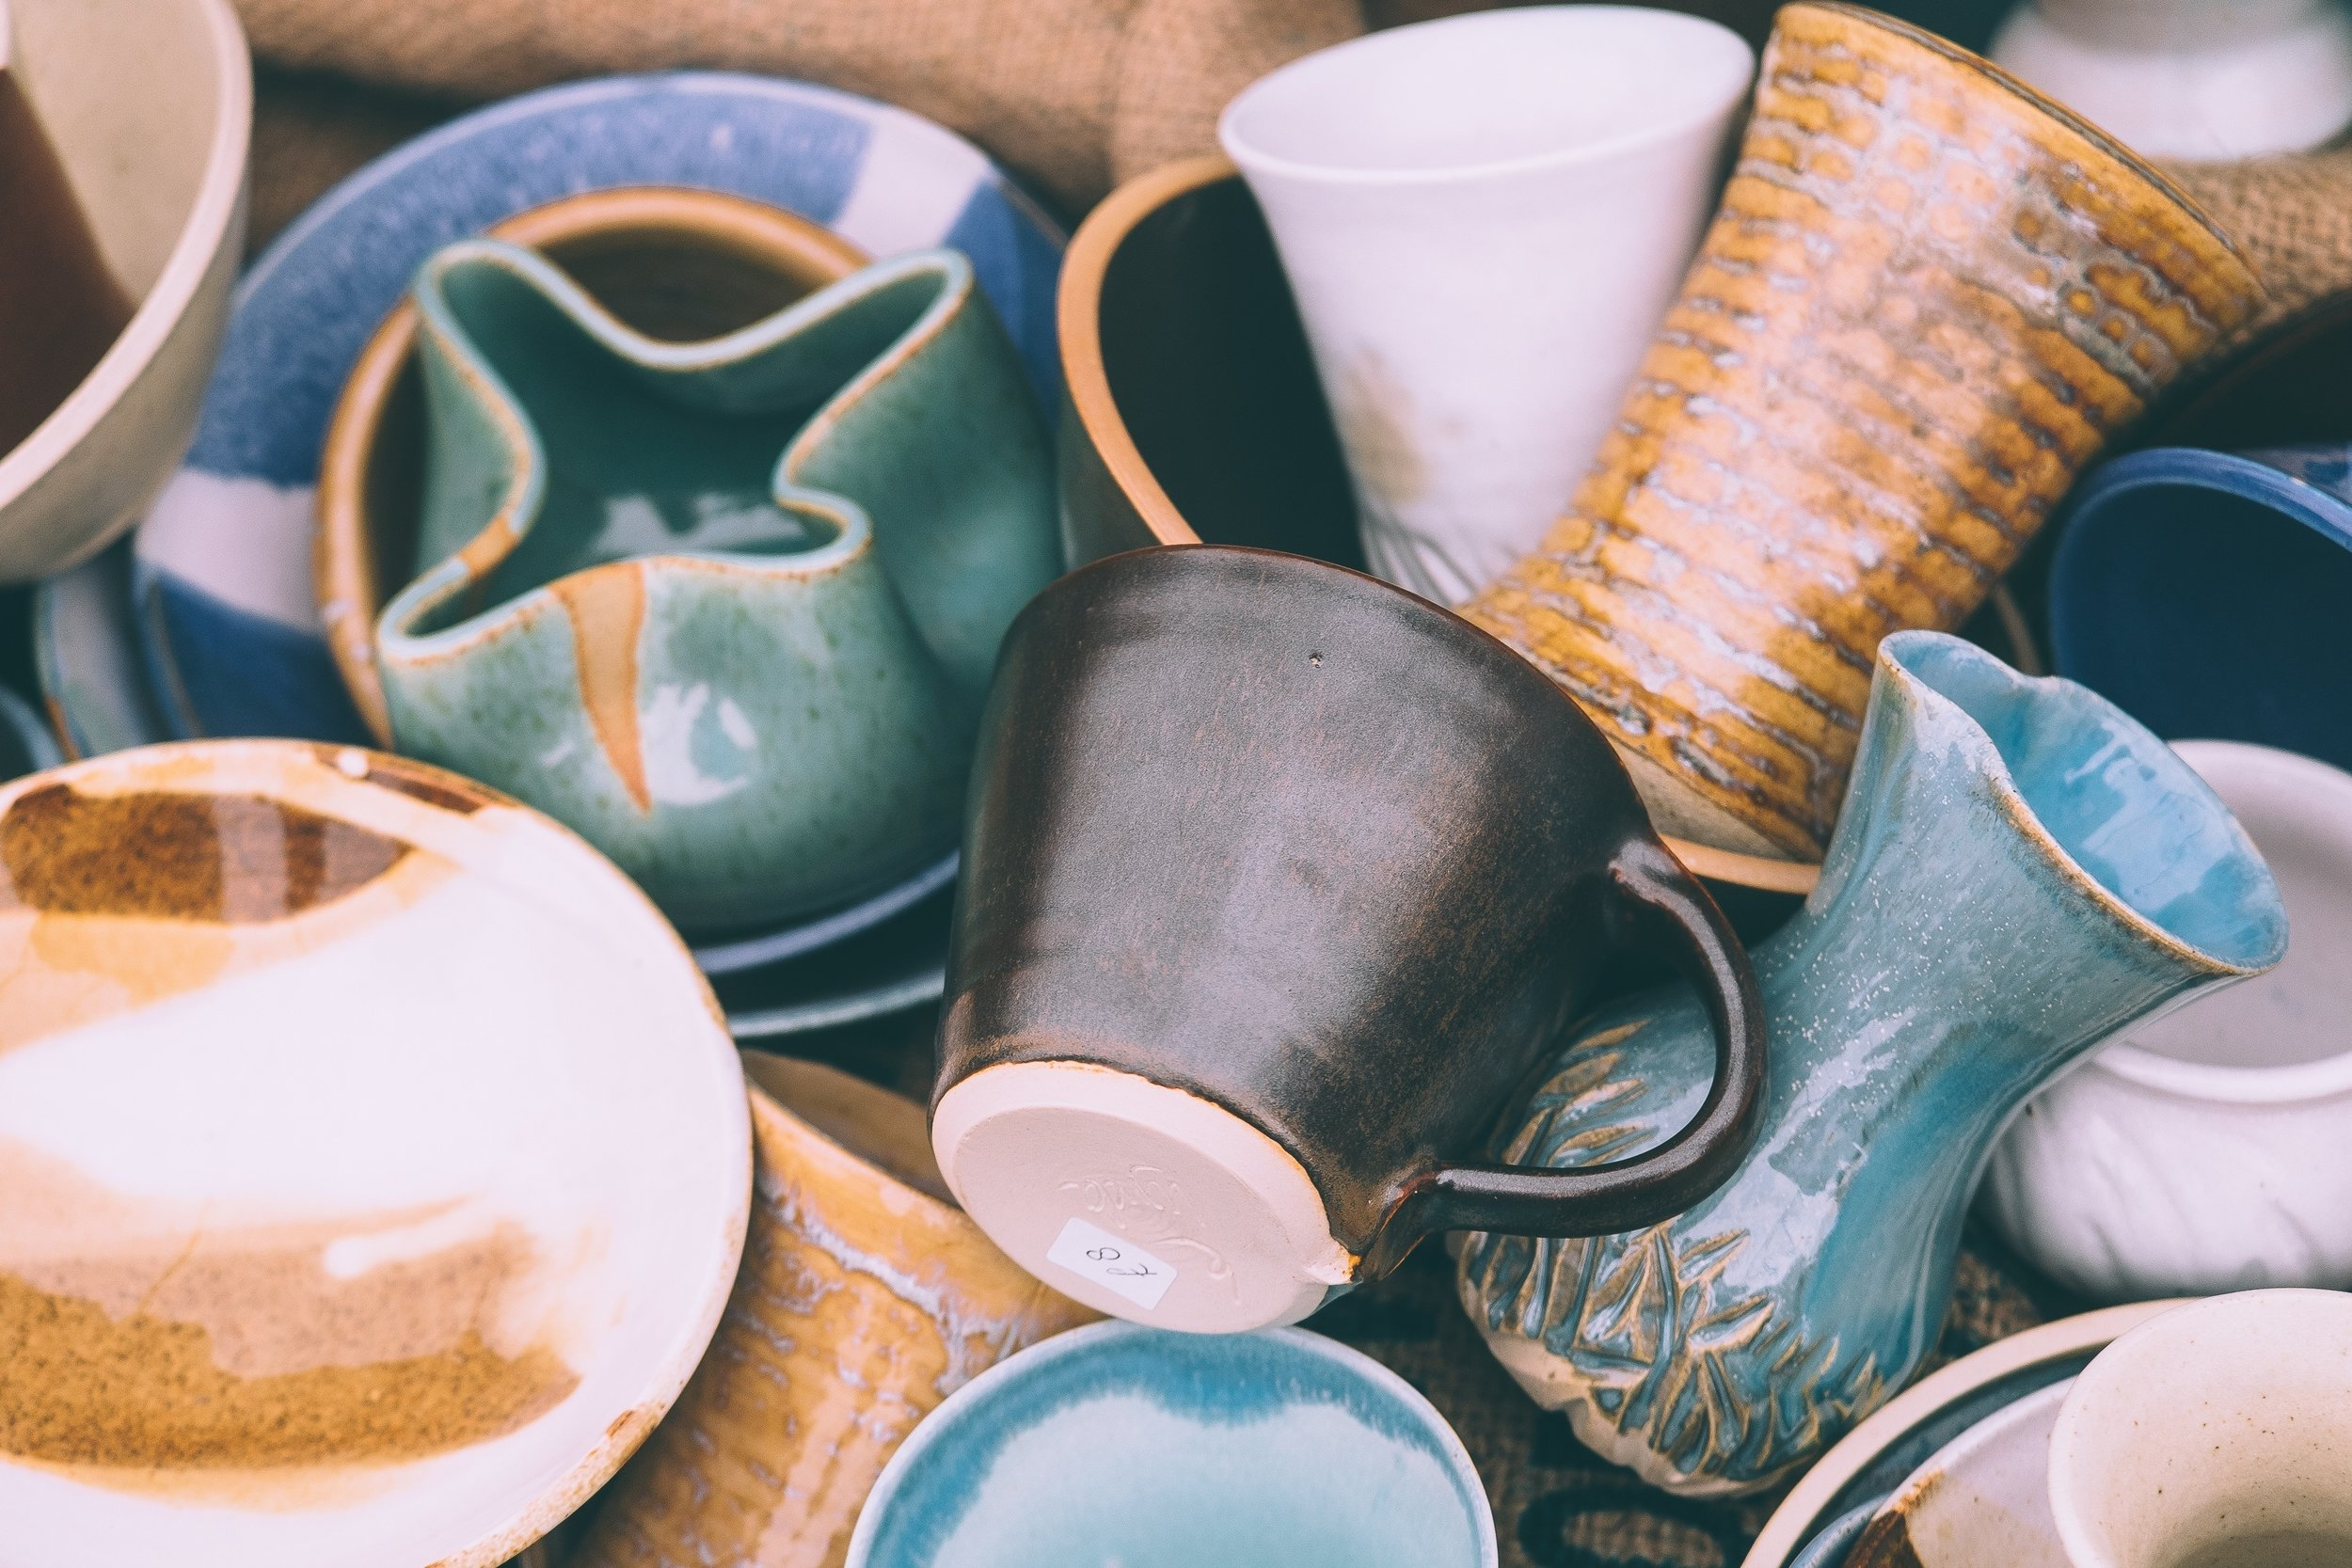 Handmade pottery at the Chattanooga Market, everything from Mugs to Berry Bowls to Vases, the selection is beautiful